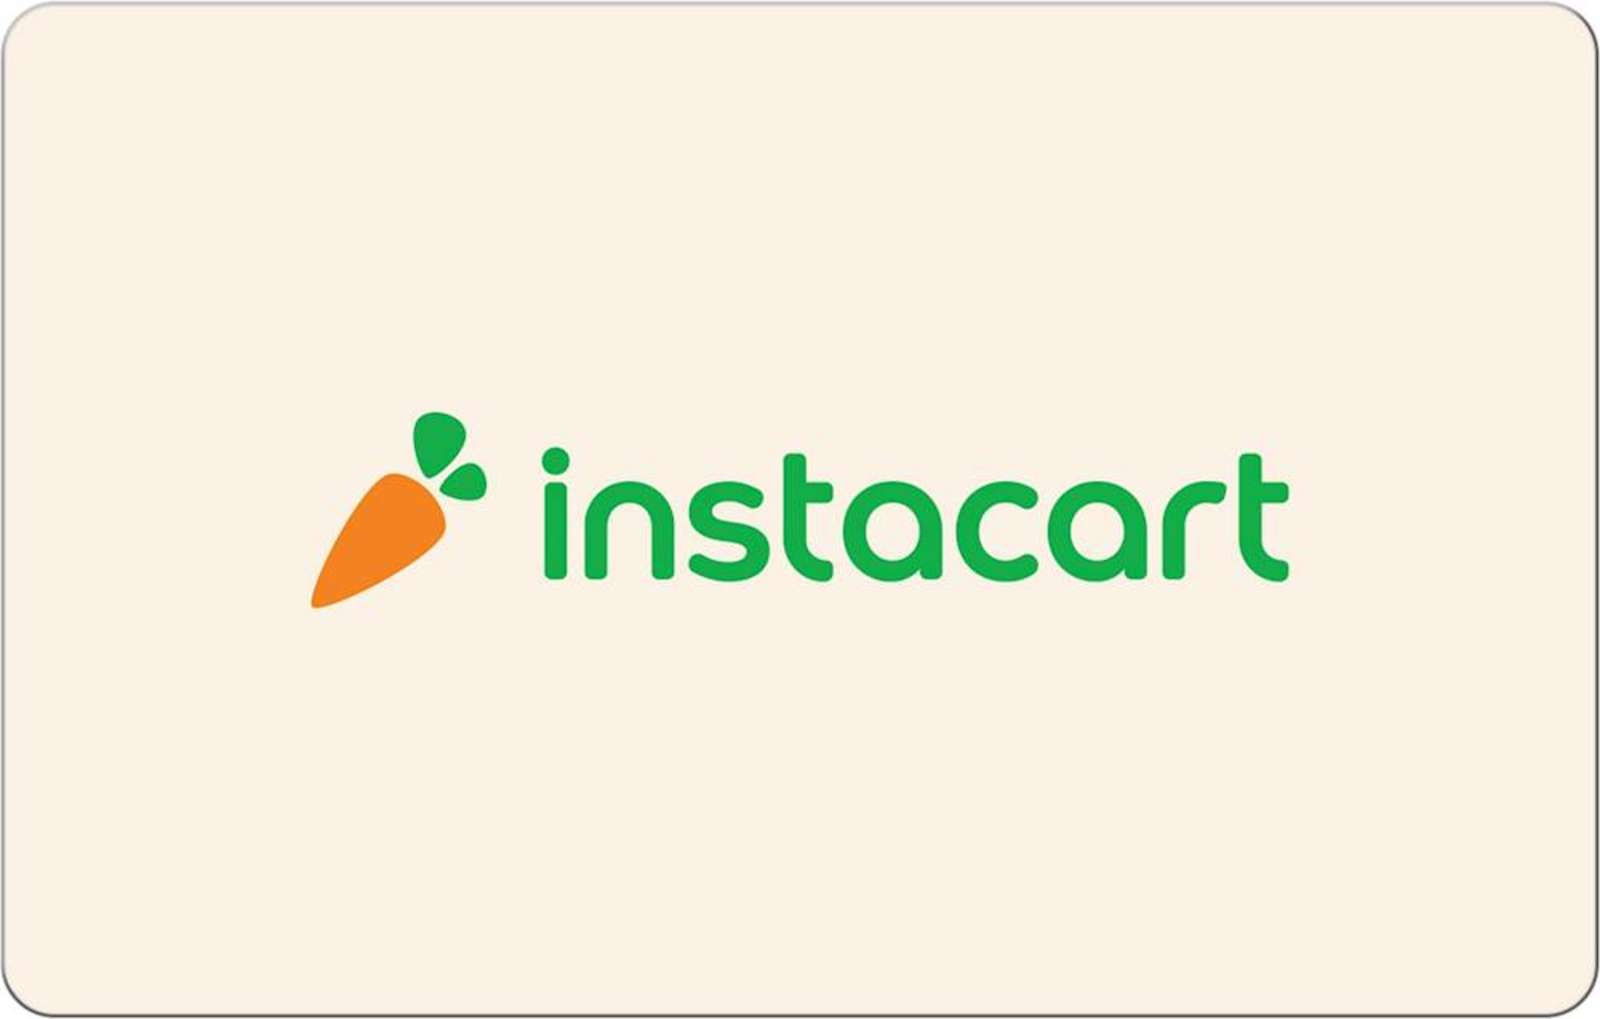 Why Head Out to The Supermarket Yourself When You Can Order In With Instacart?